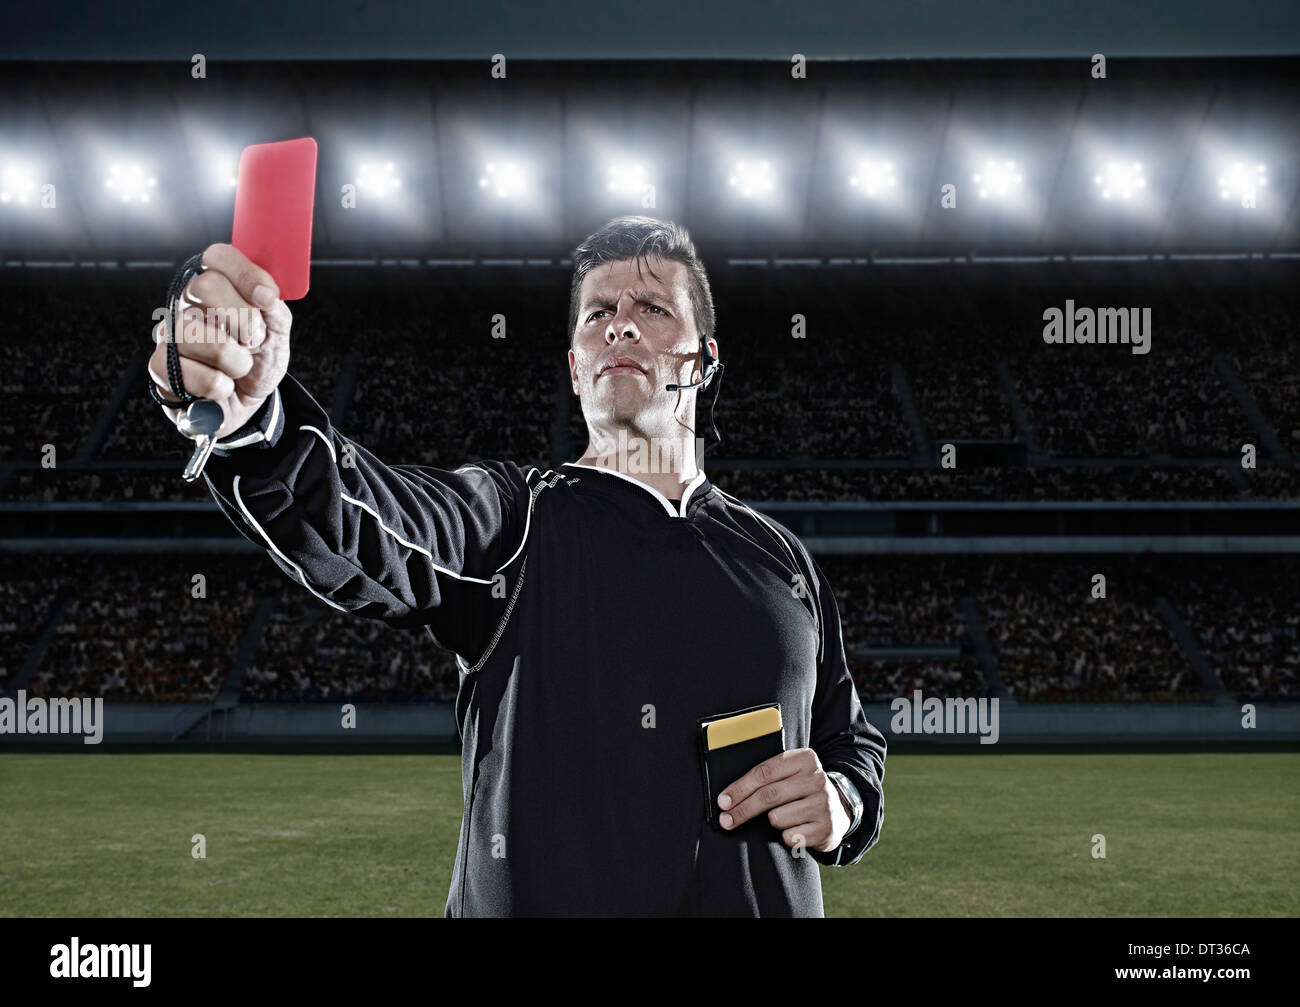 Referee flashing red card on soccer field - Stock Image